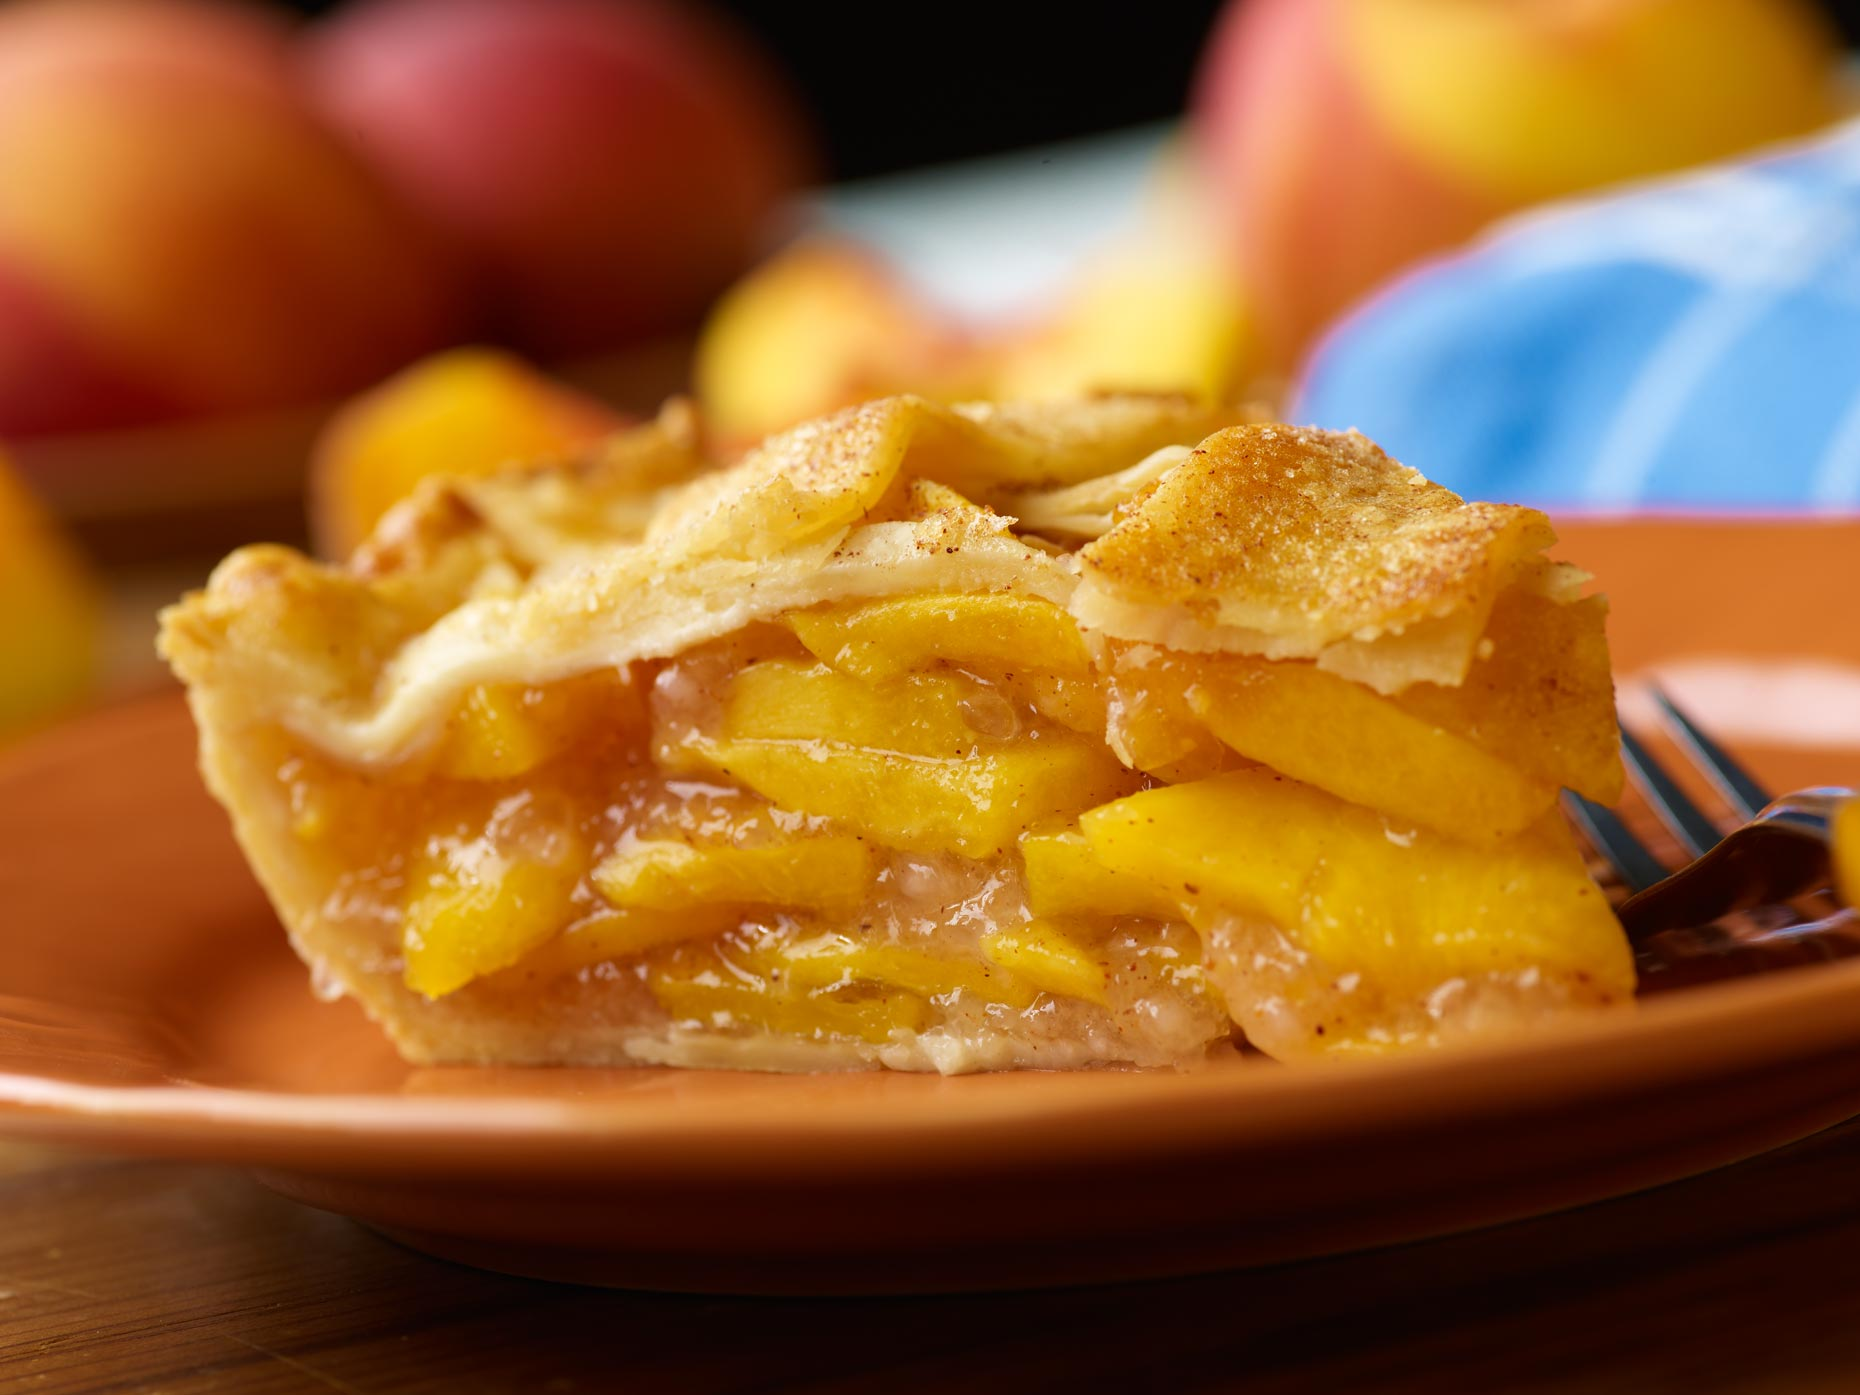 Dessert Photography | Slice of Peach Pie